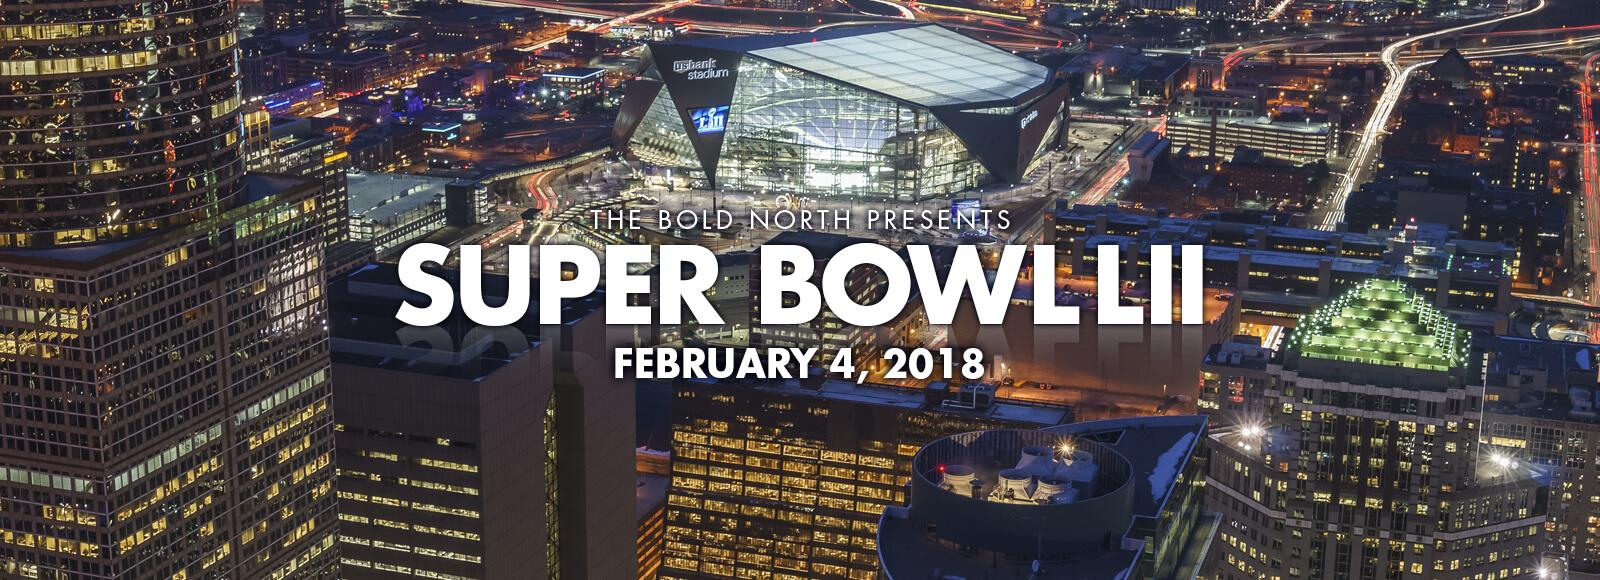 Super Bowl Sunday Weekend Package